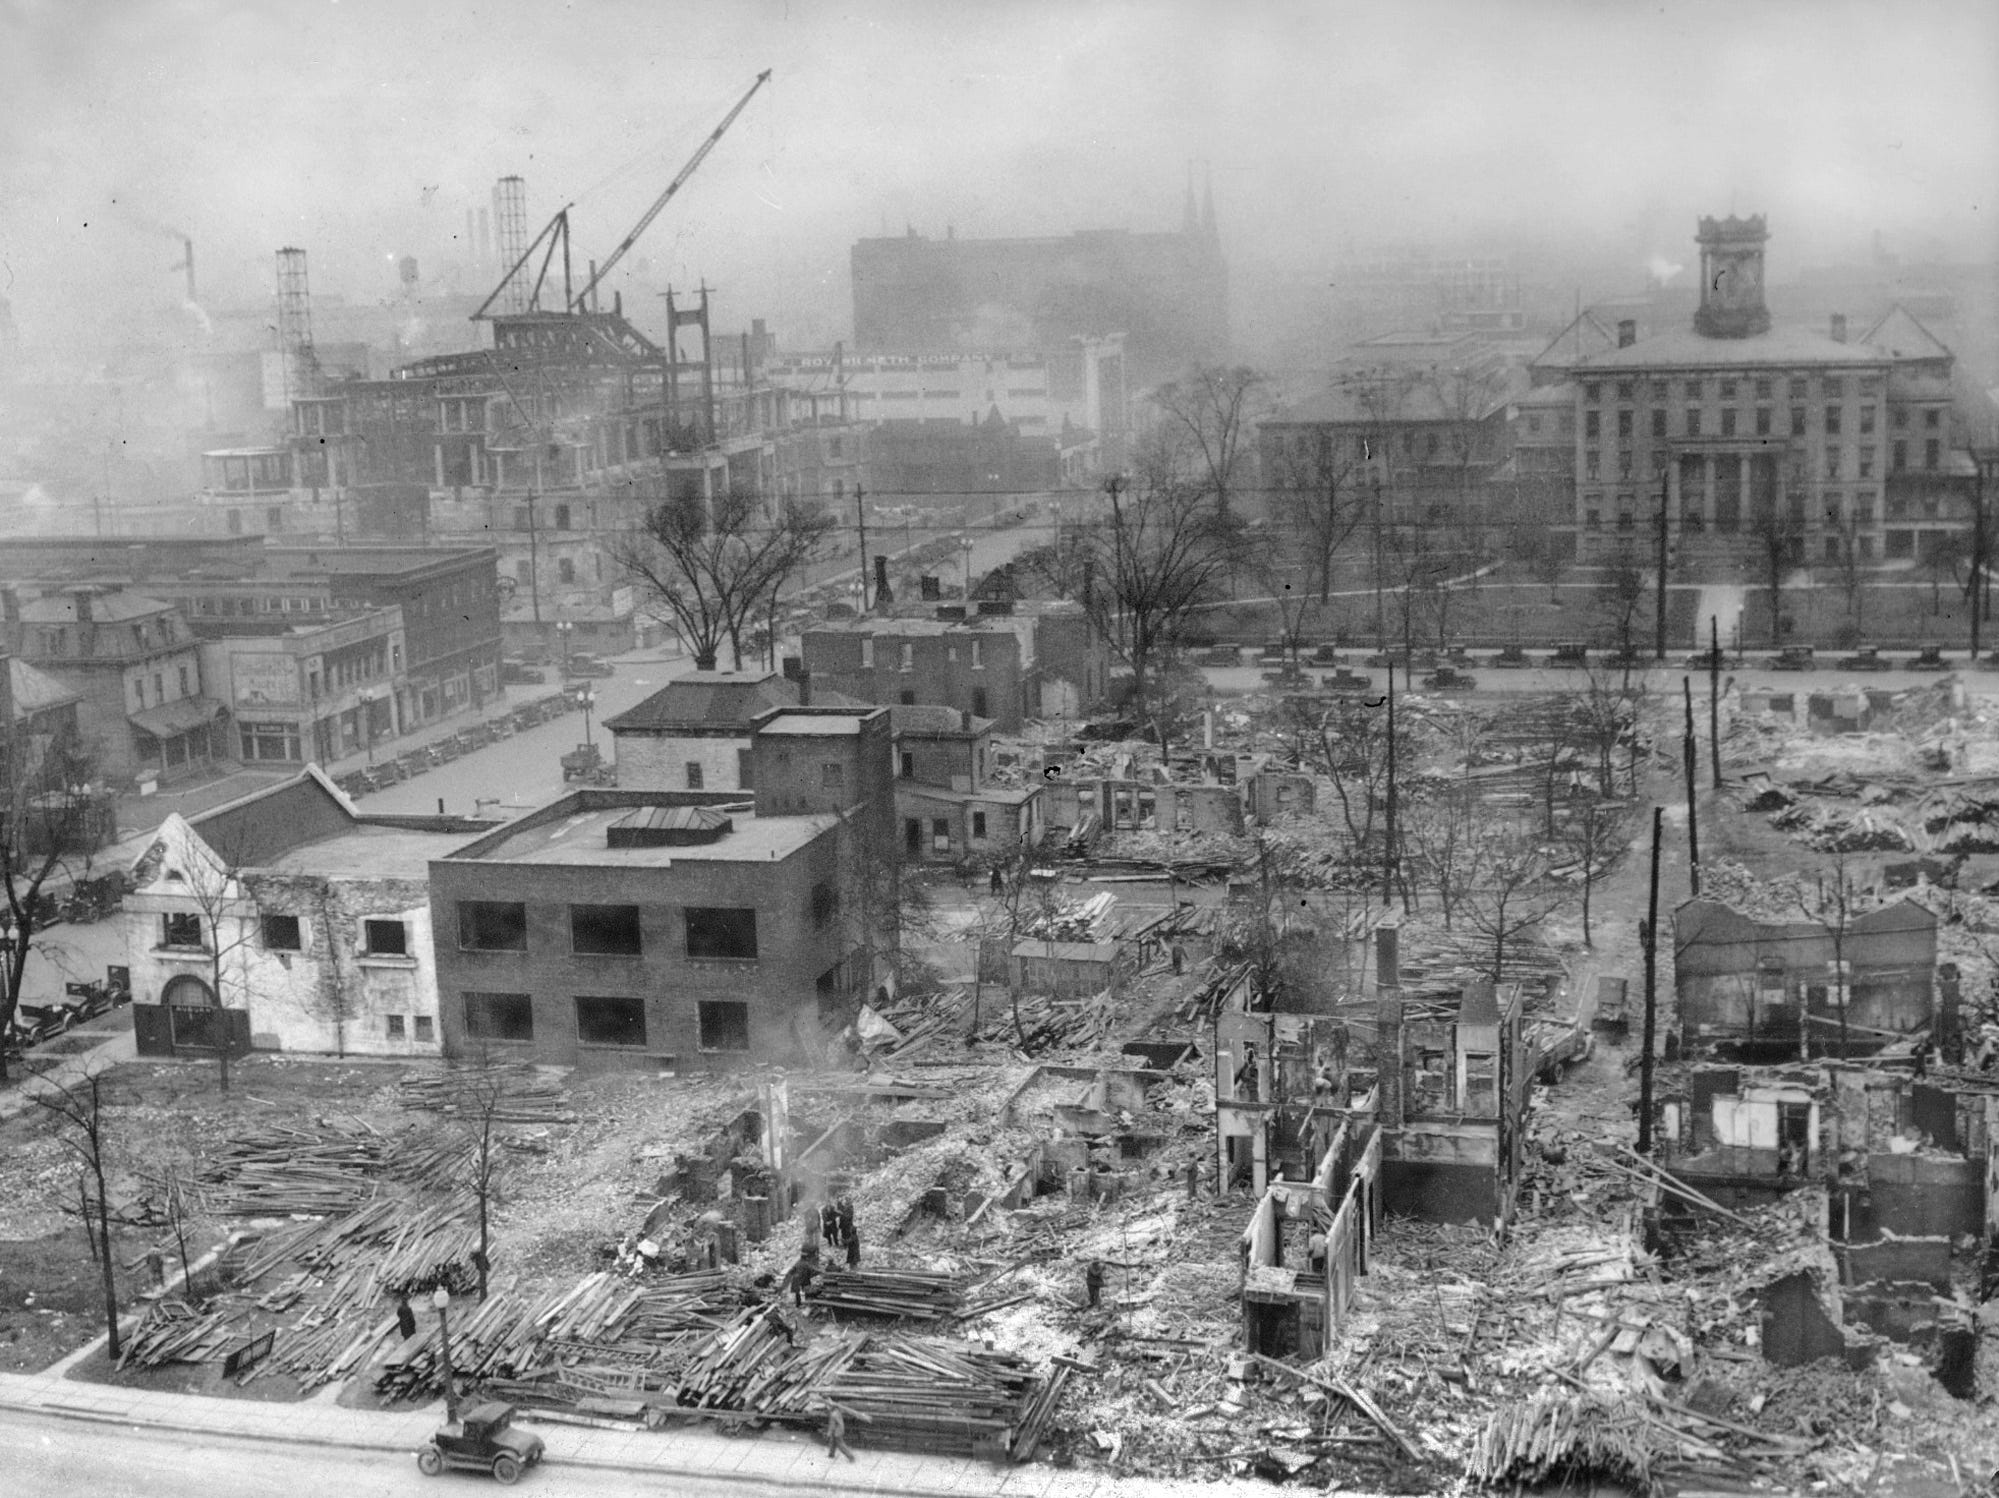 The demolition of buildings on the east side of Meridian Street looking north from Michigan Street made way for Veteran's Memorial Plaza, under construction in Downtown Indianapolis on Feb. 11, 1928. The old Indiana School for the Blind, shown in the background at right (facing North Street), eventually met a similar fate years later. This area became part of a five-block civic plaza from New York Street on the south to St. Clair Street on the north, incorporating University Park, the Indiana World War Memorial, Obelisk Square and the American Legion Mall. Work on the World War Memorial, on the south side of Michigan Street, began early in 1926. The block shown here is now Obelisk Square, completed in 1930, featuring a 100-foot-tall pillar faced in granite and surrounded by a fountain.